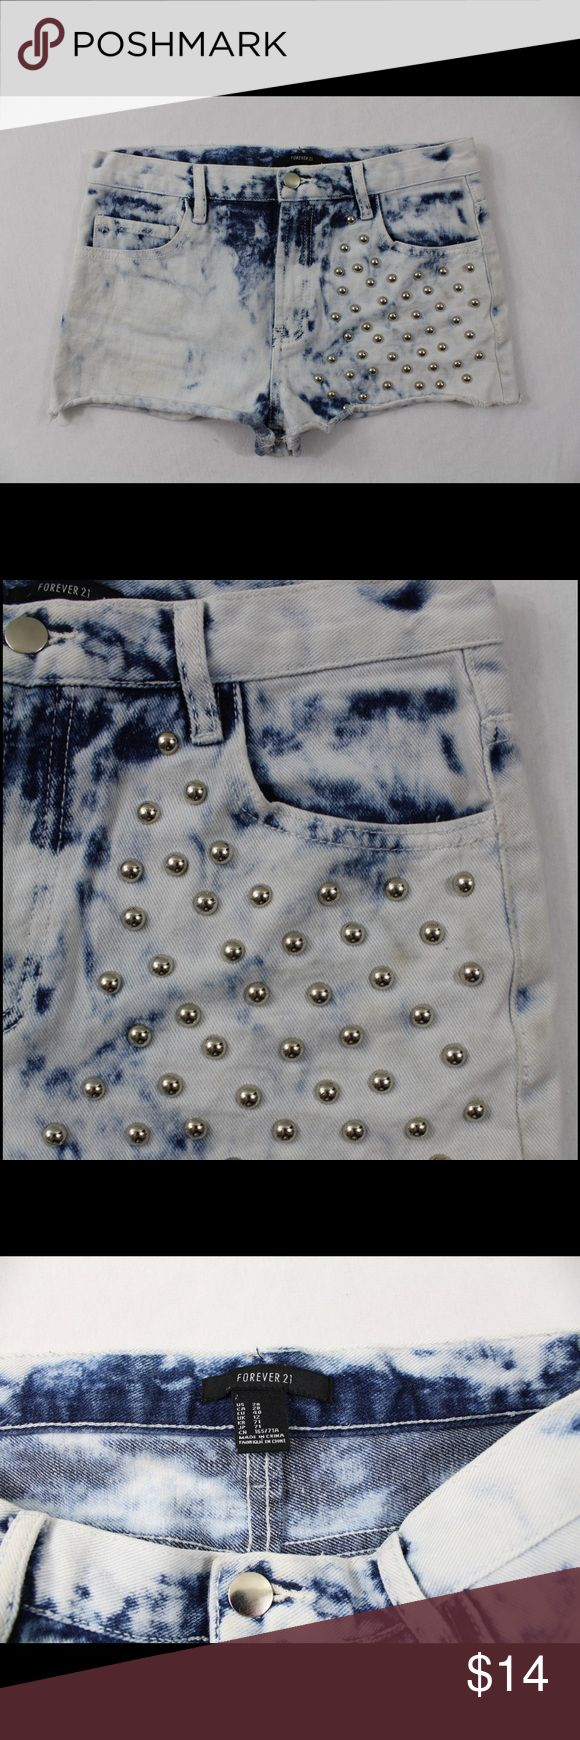 Forever 21 embellished acid wash shorts size 28 These are super cute acid washed Forever 21 shorts in a size 28 (around a 7 I believe) Excellent condition! Waist: 30in. Hips: 37in. Forever 21 Shorts Jean Shorts